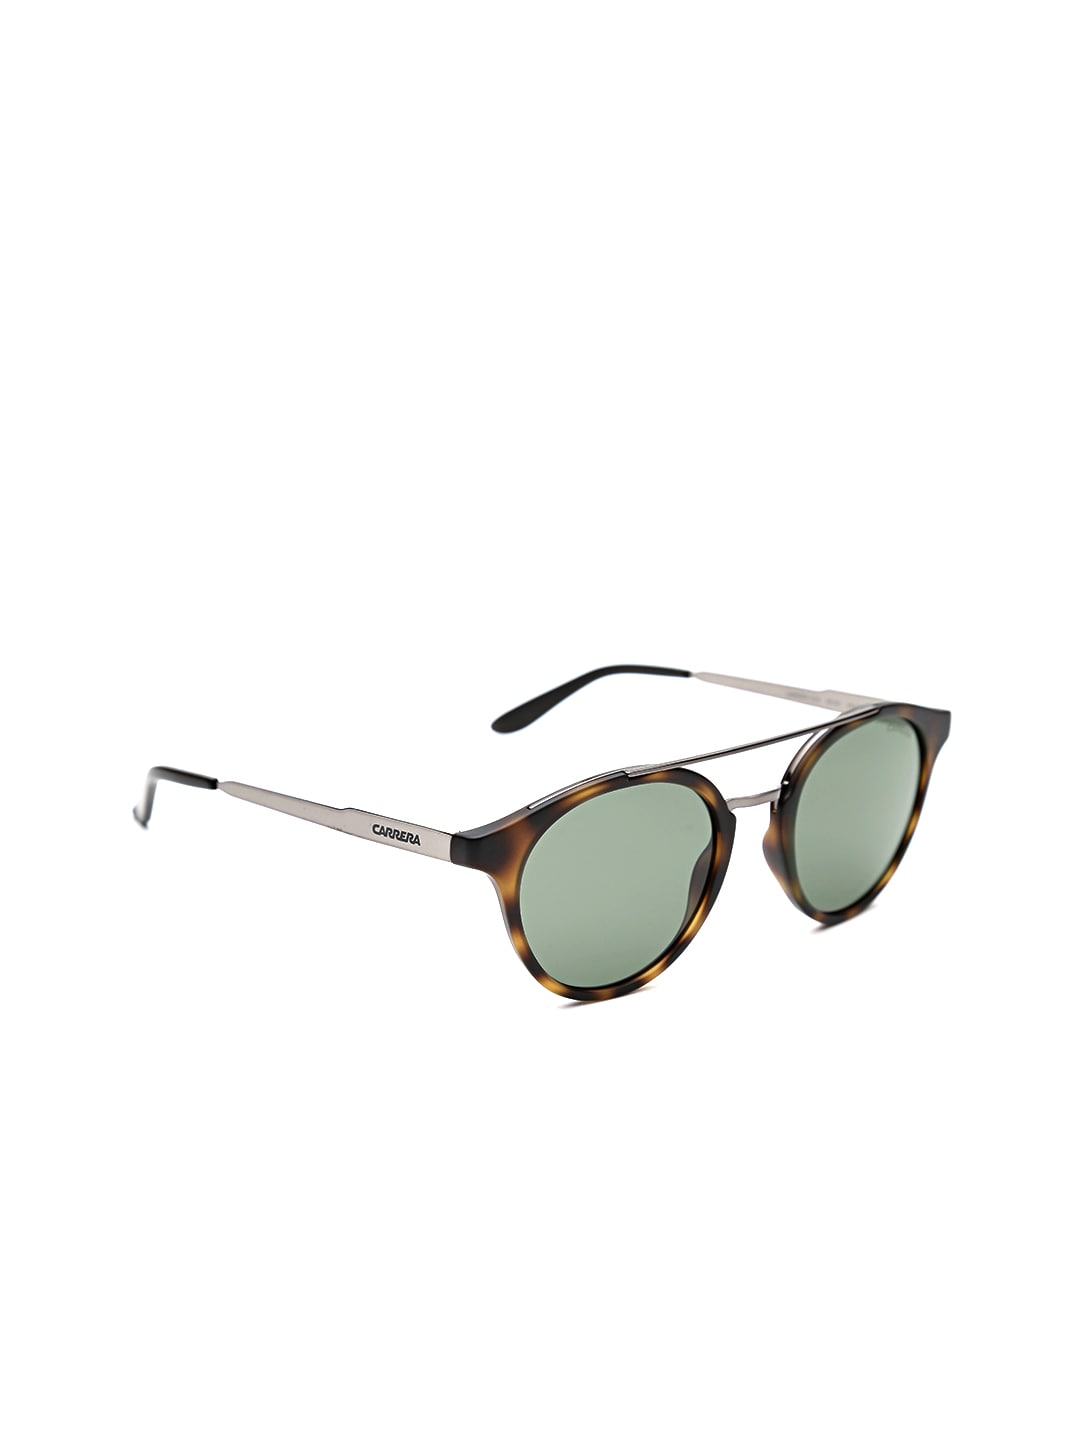 acbb253e95 Sunglasses - Buy Shades for Men and Women Online in India